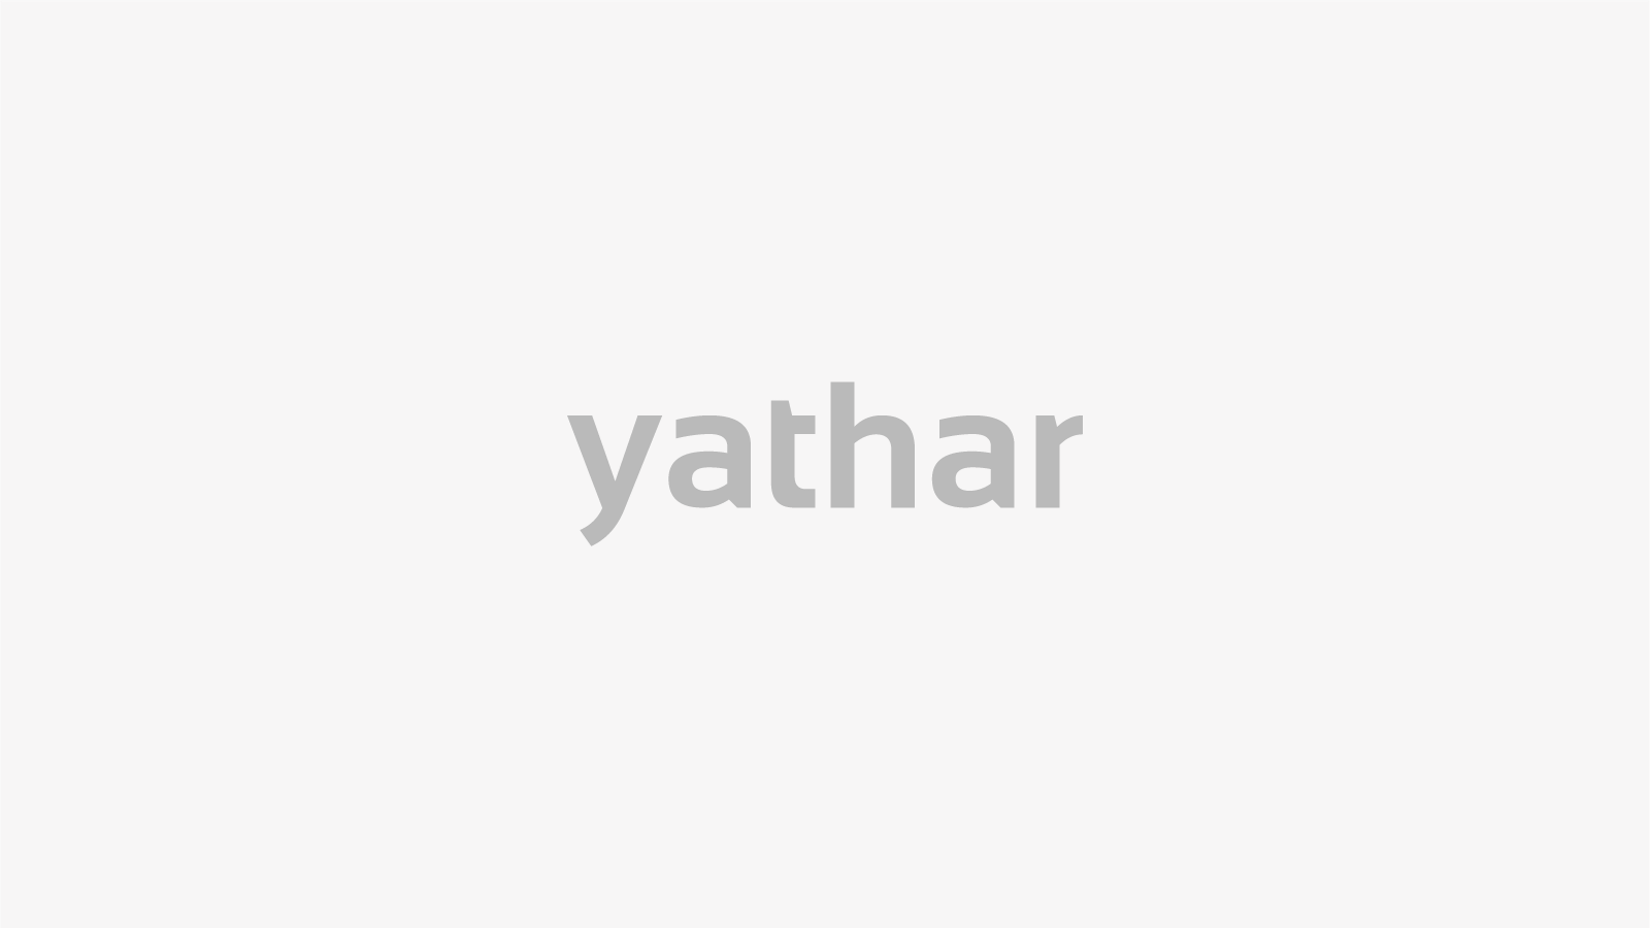 world | yathar